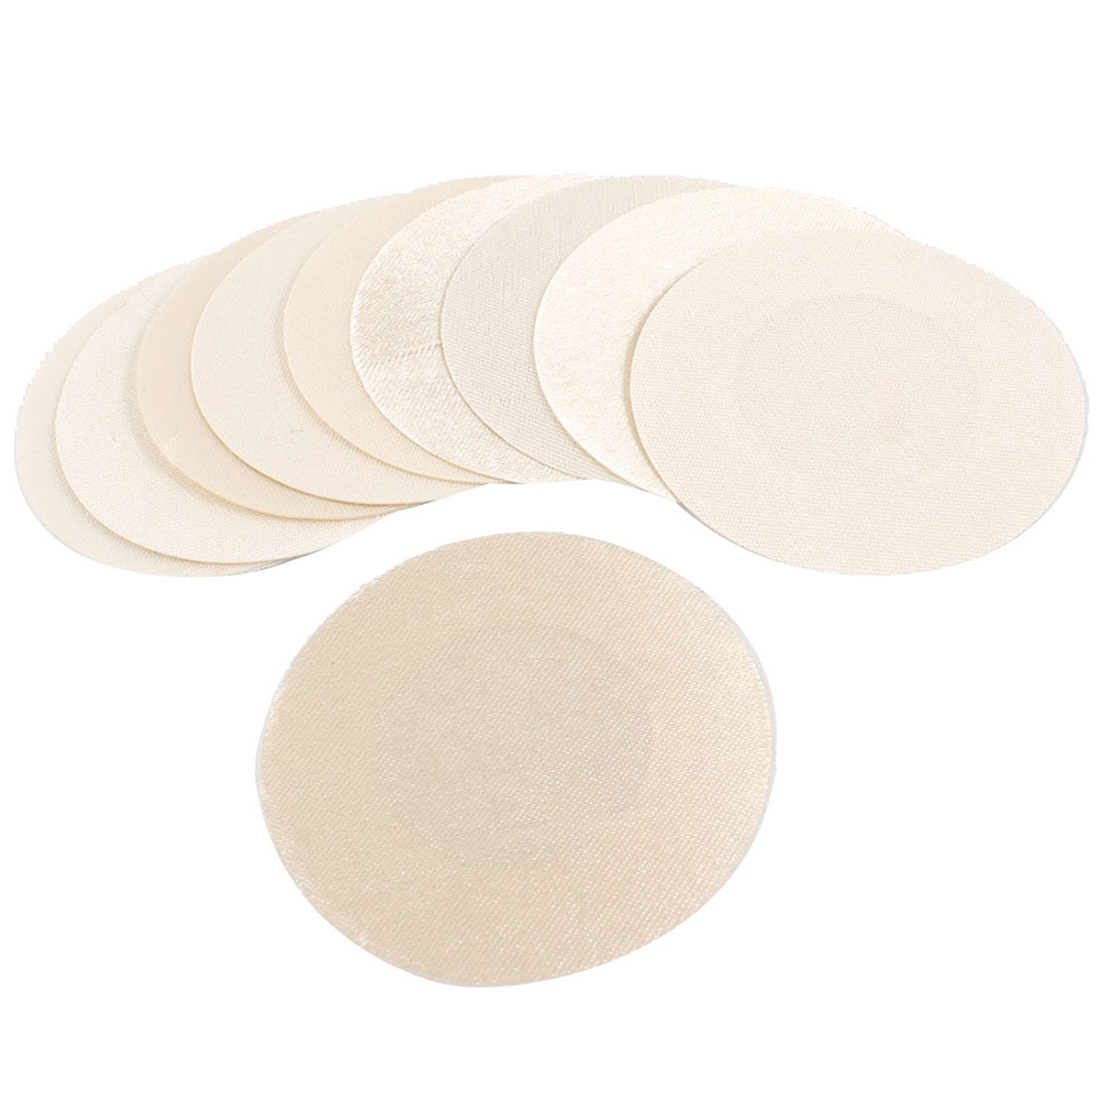 "10 Pcs 2"" Dia Polyester Nipple Cover Pads Beige for Ladies"